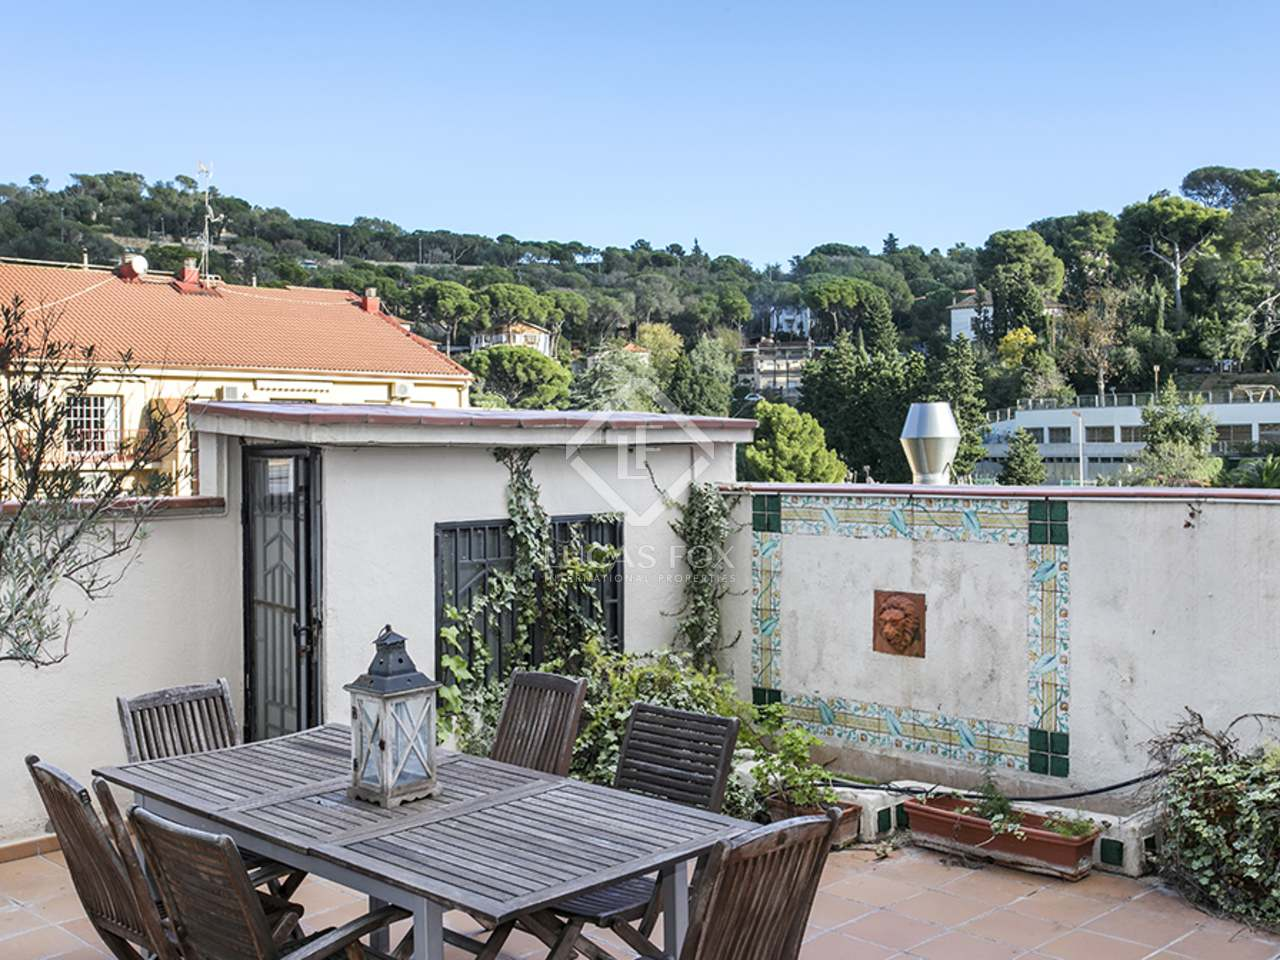 Unfurnished duplex with terrace to rent in gr cia vallcarca for 50 park terrace west